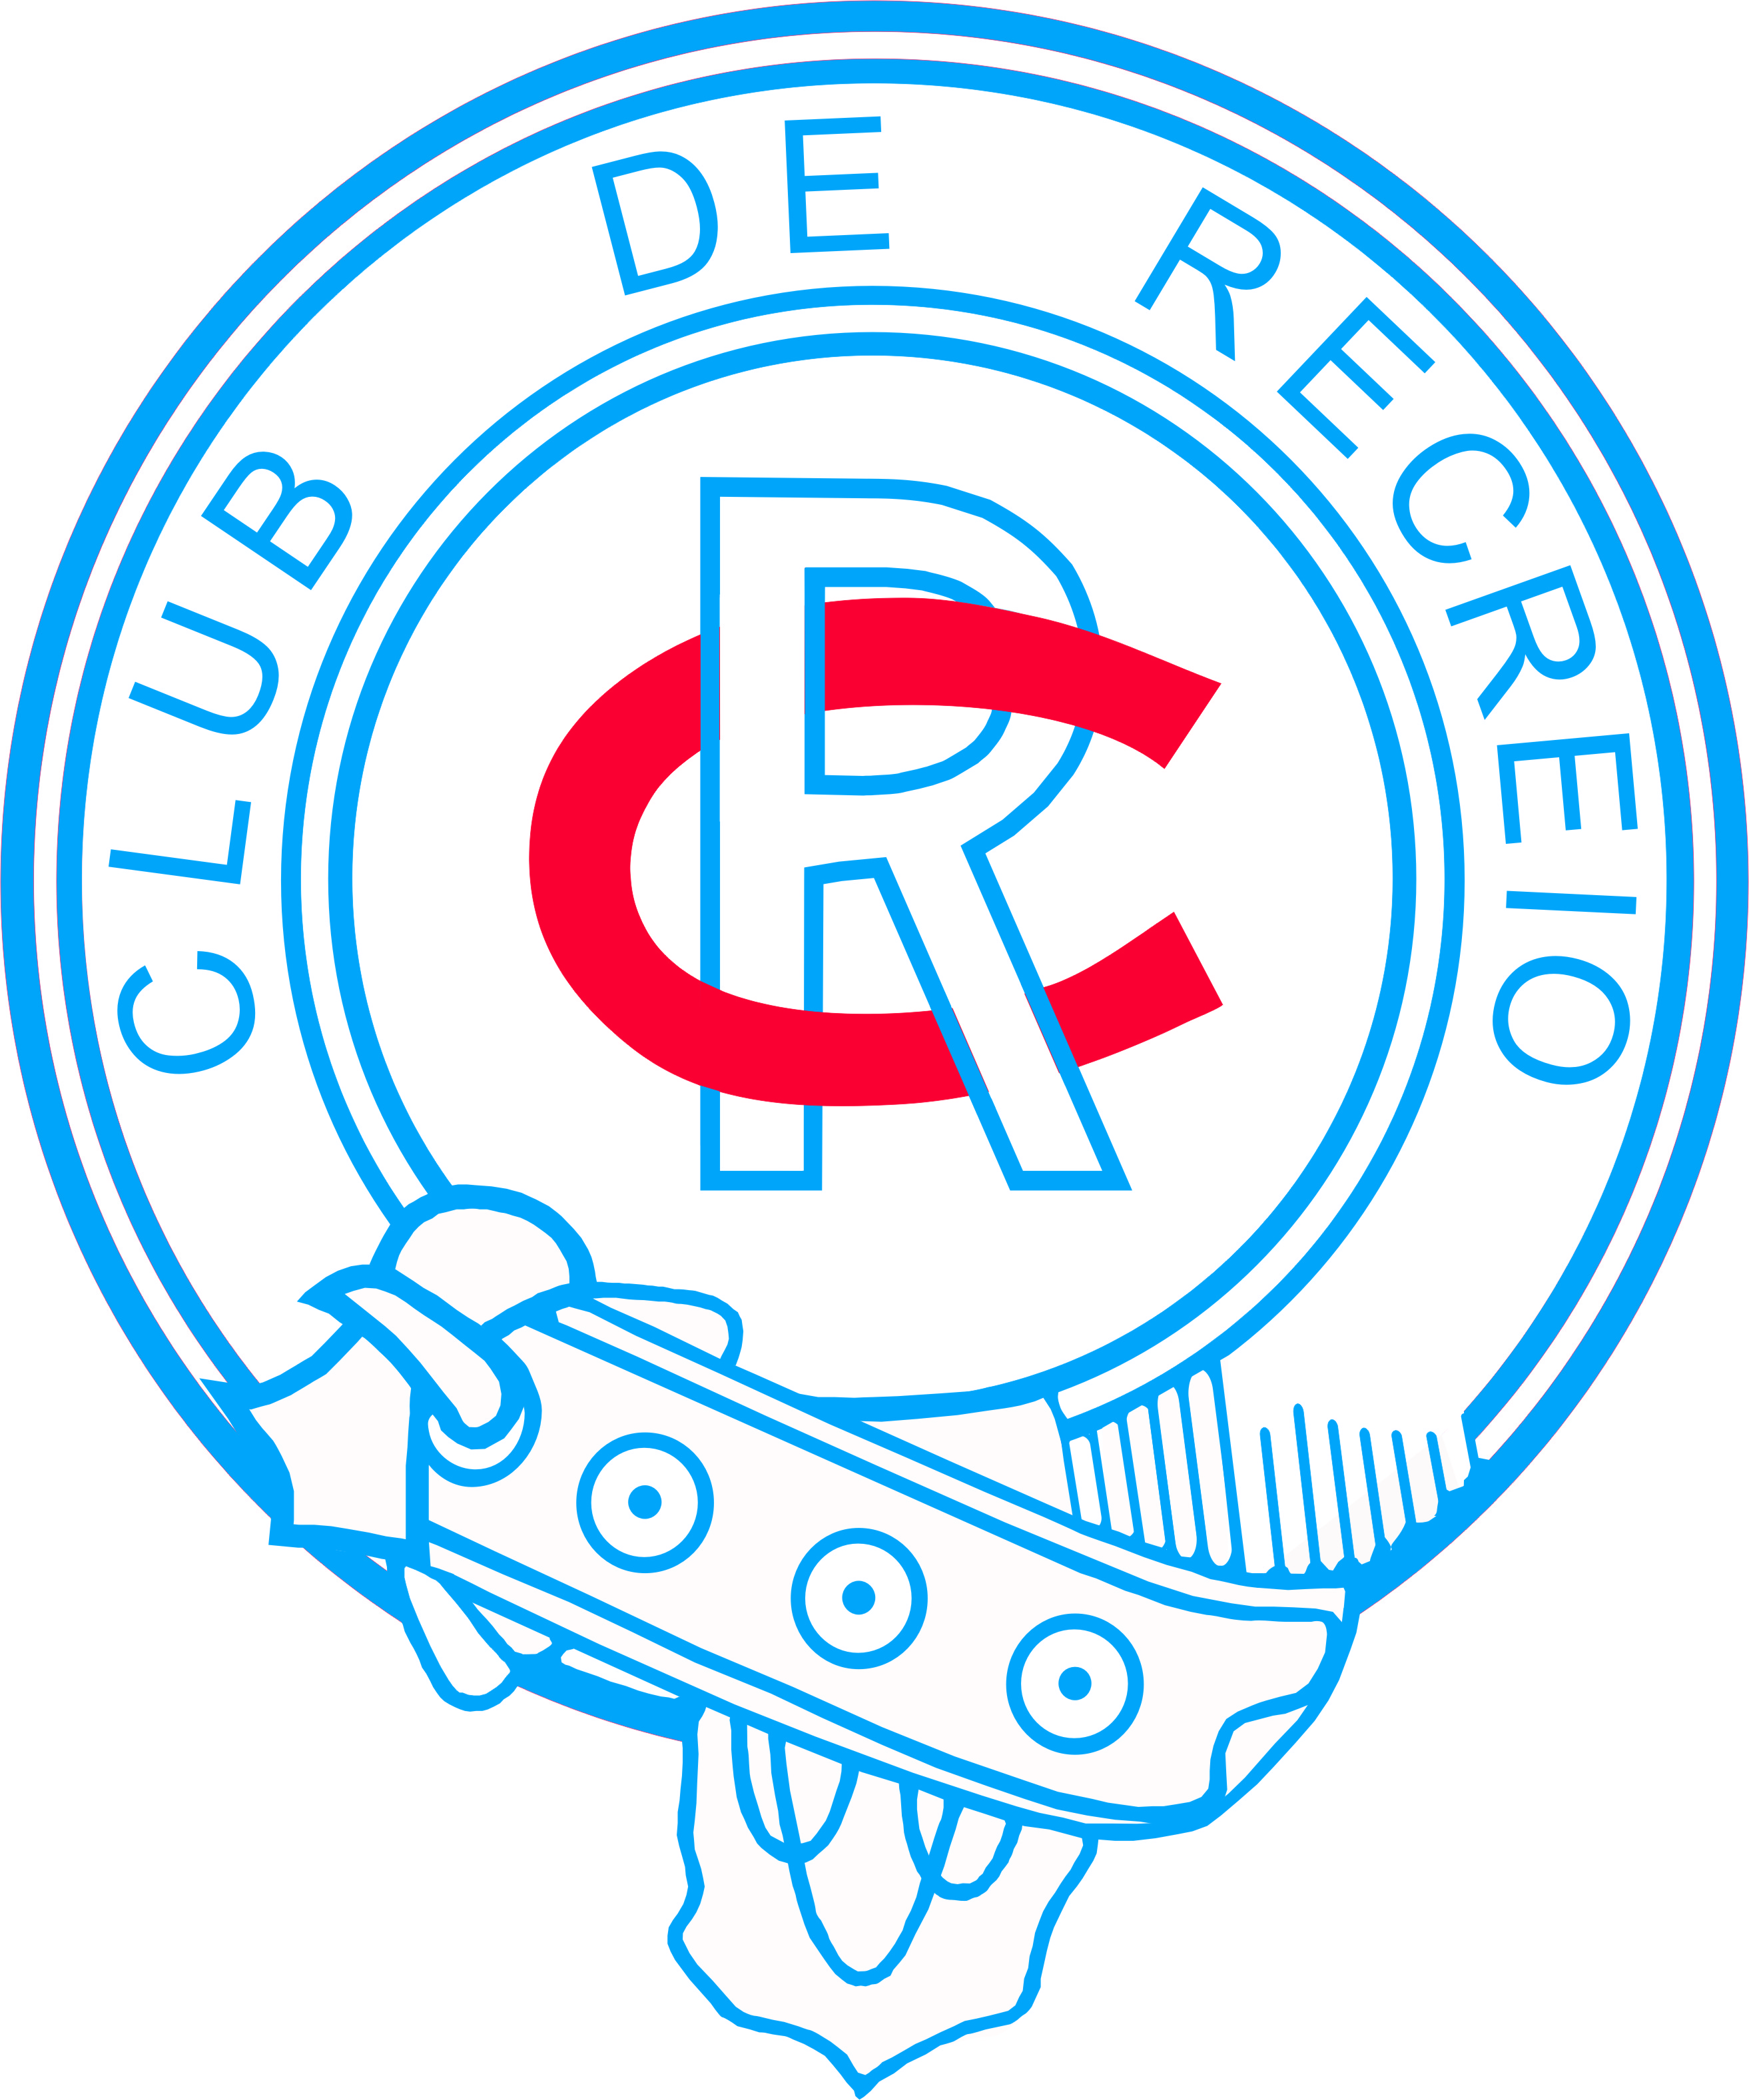 Club de Recreio Logo